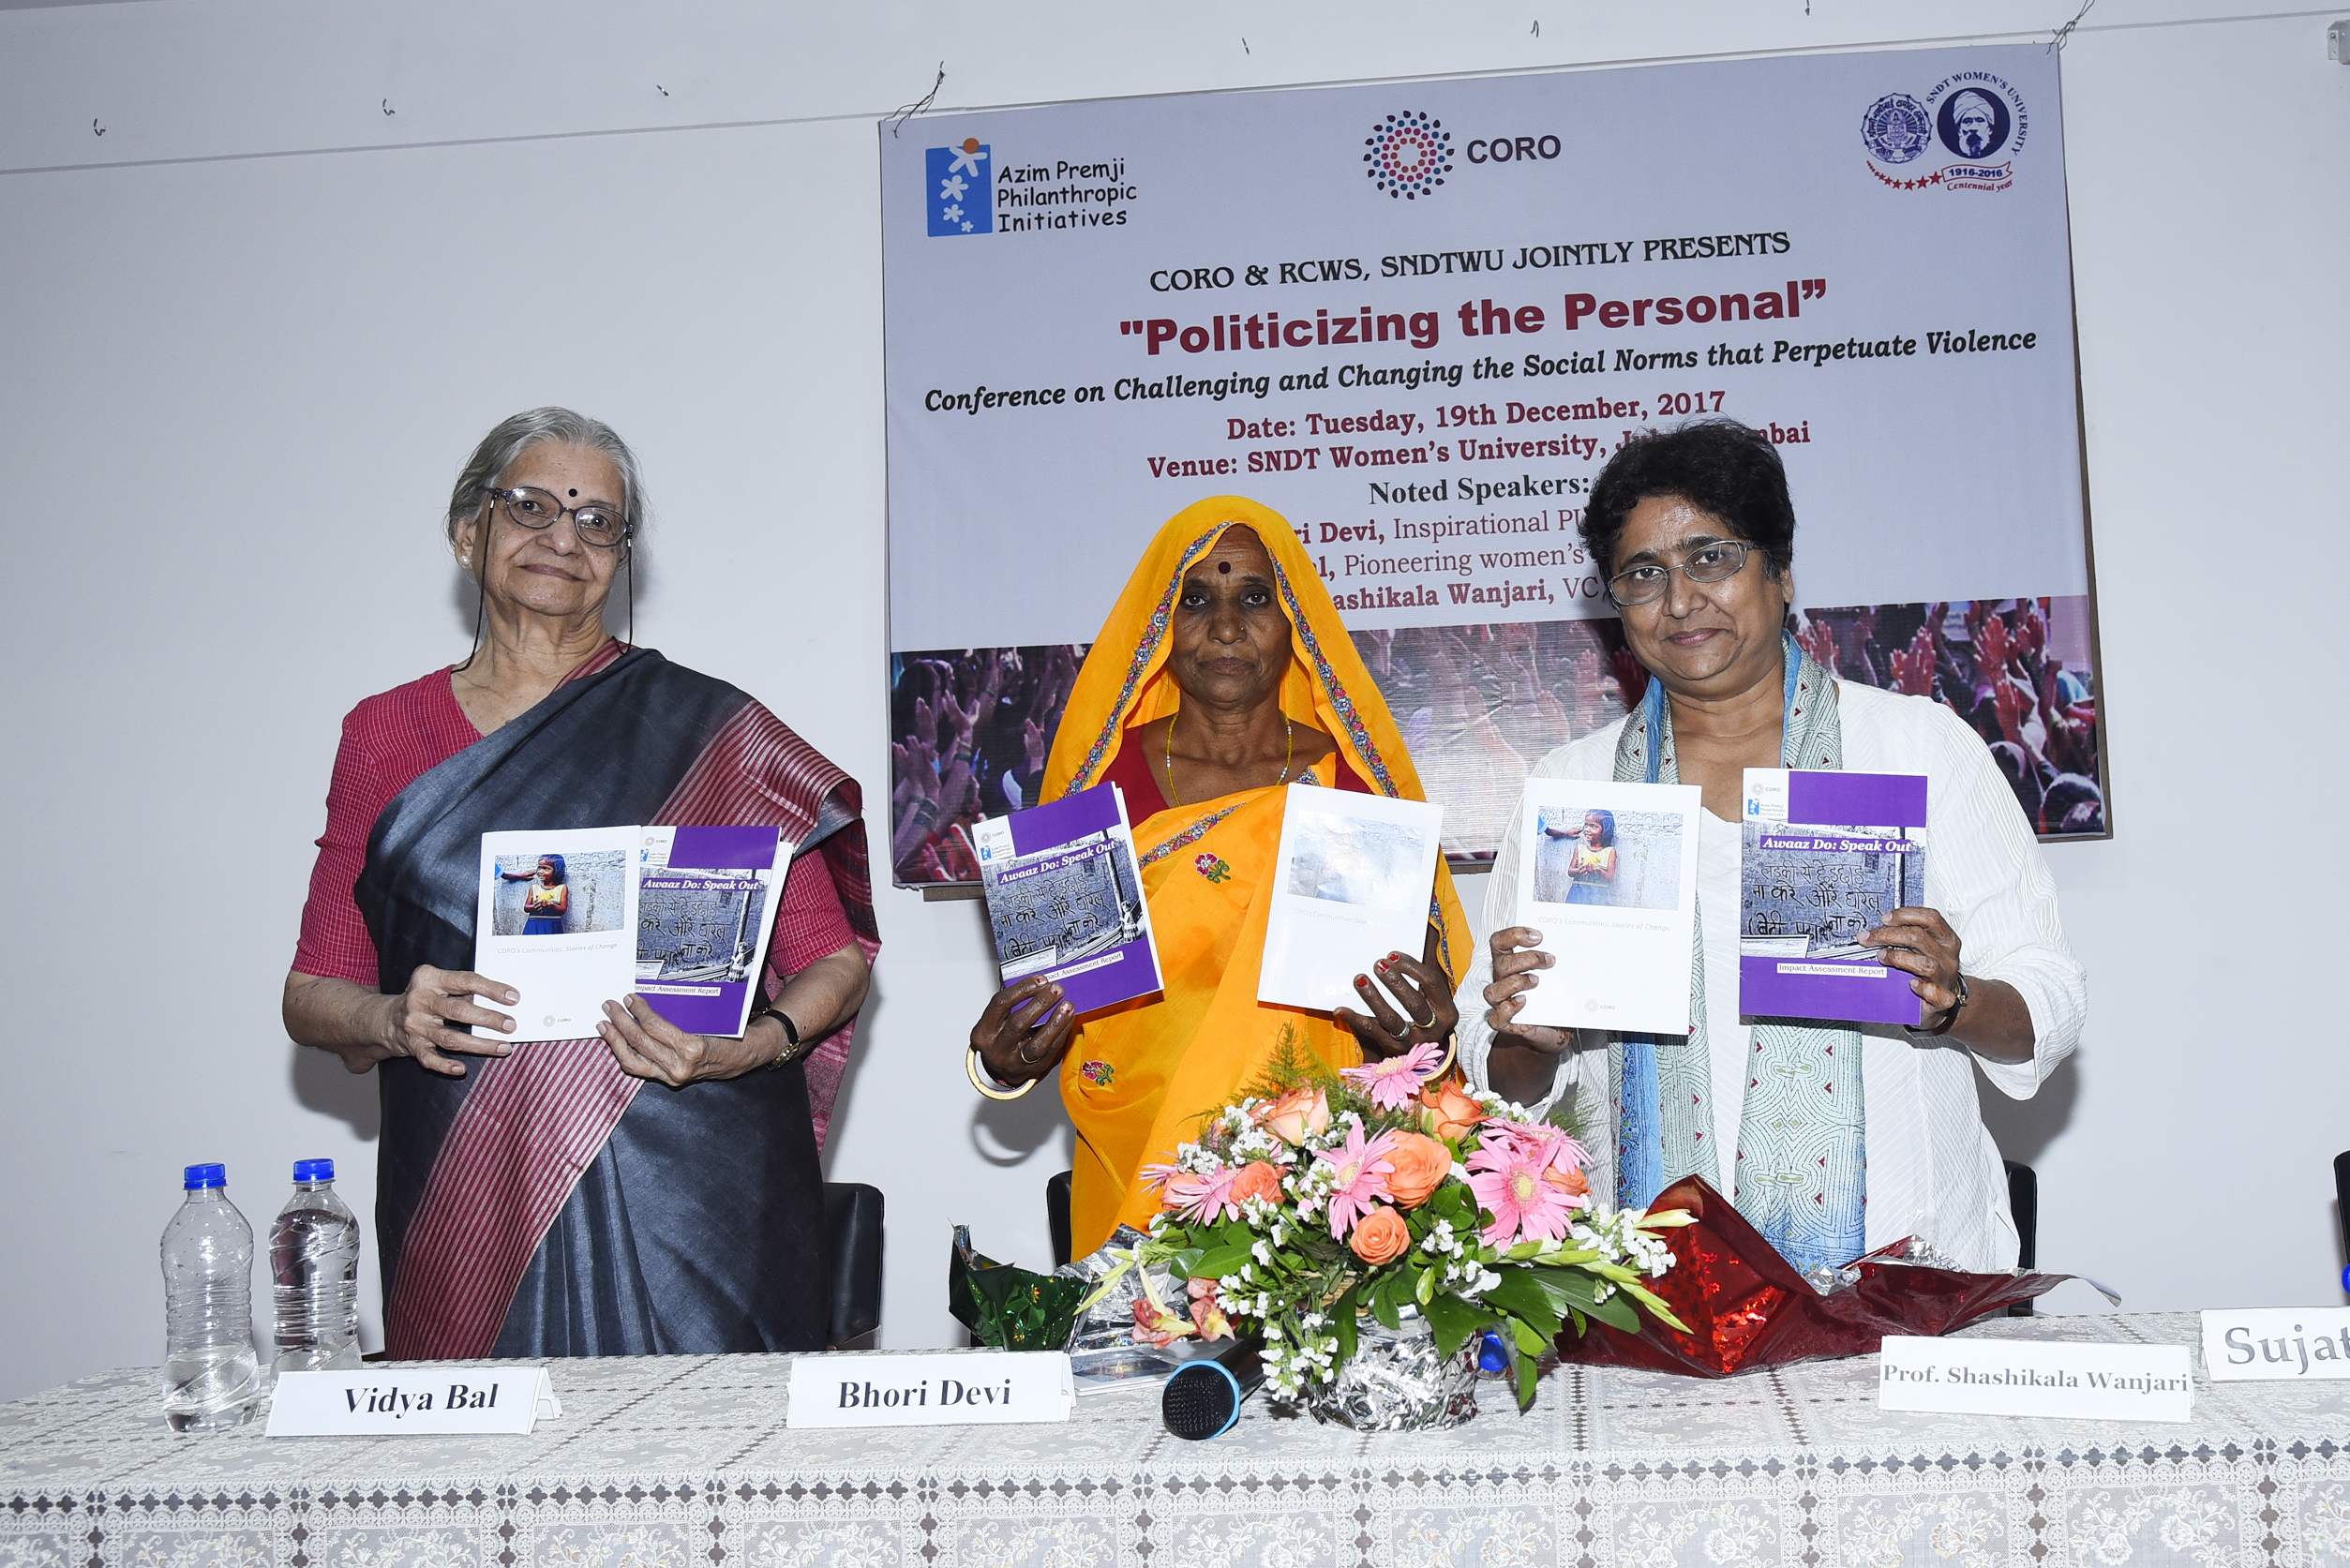 """Politicizing the Personal"""" - CORO's Conference on Tackling Violence"""